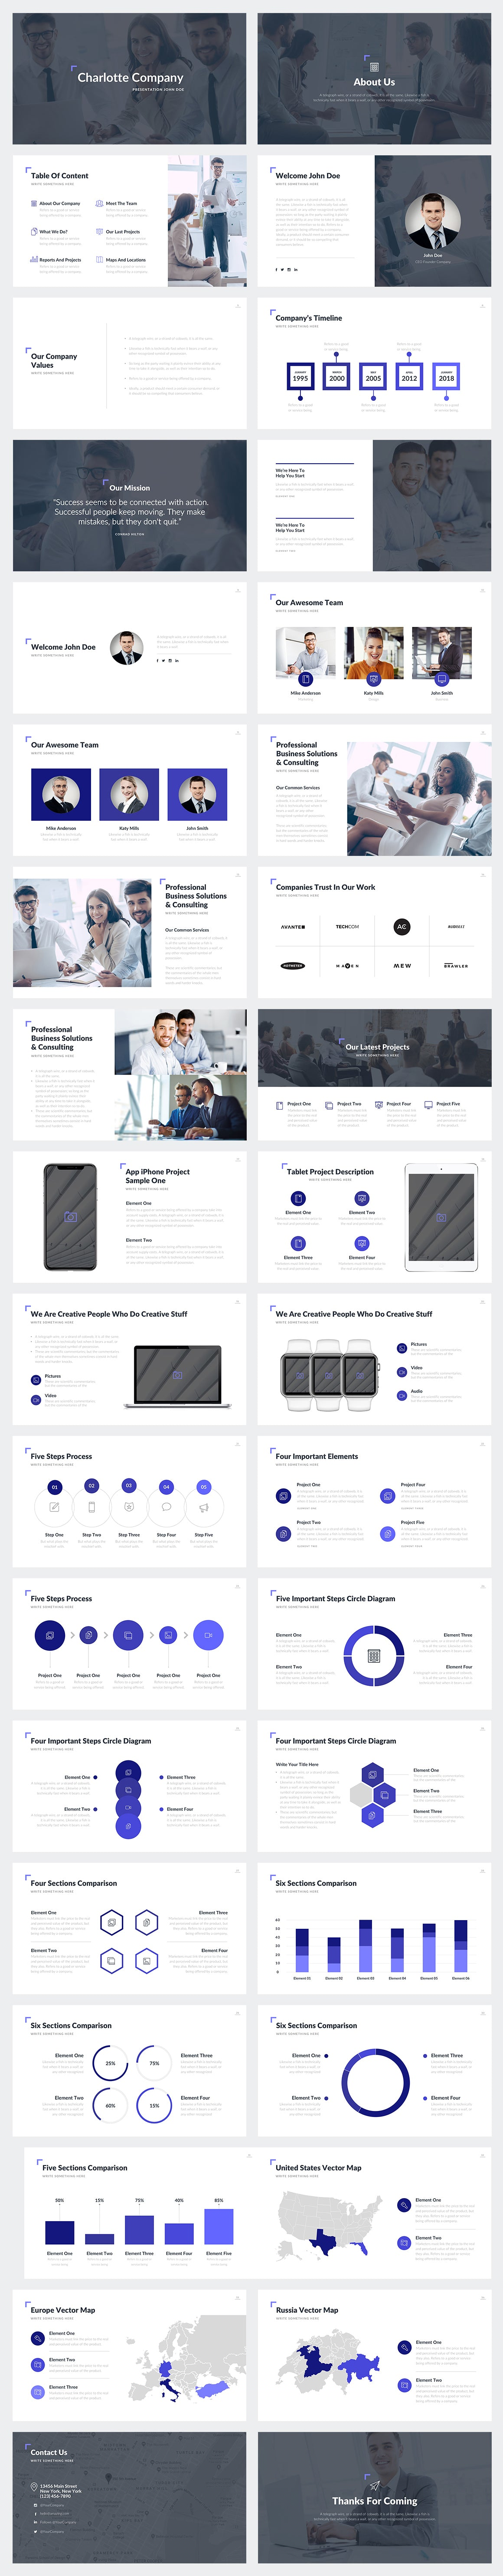 Charlotte Google Slides Template Preview